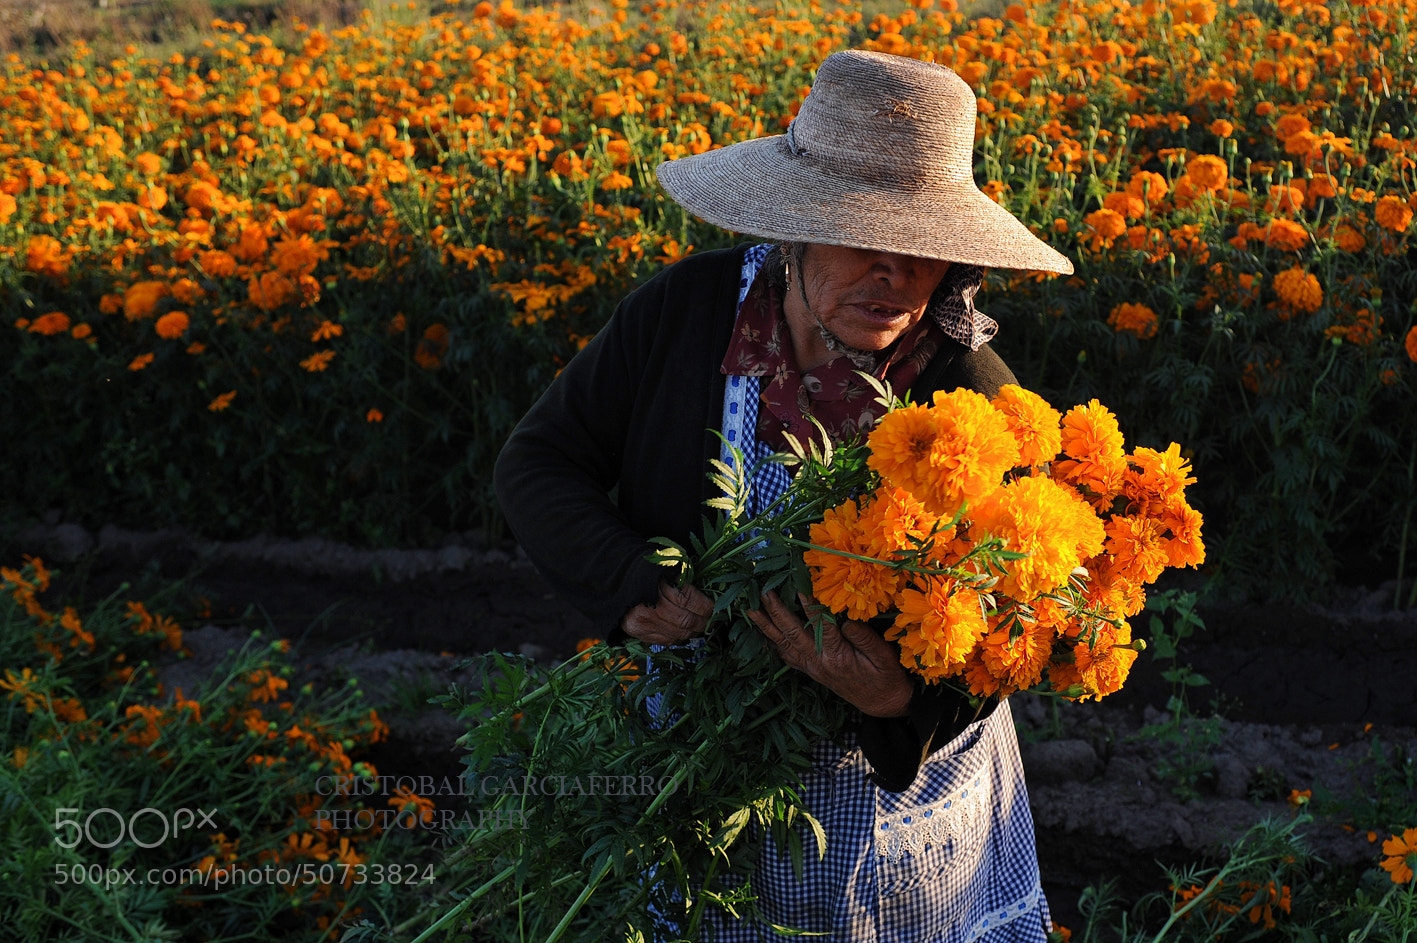 Photograph Flowers collector by Cristobal Garciaferro Rubio on 500px